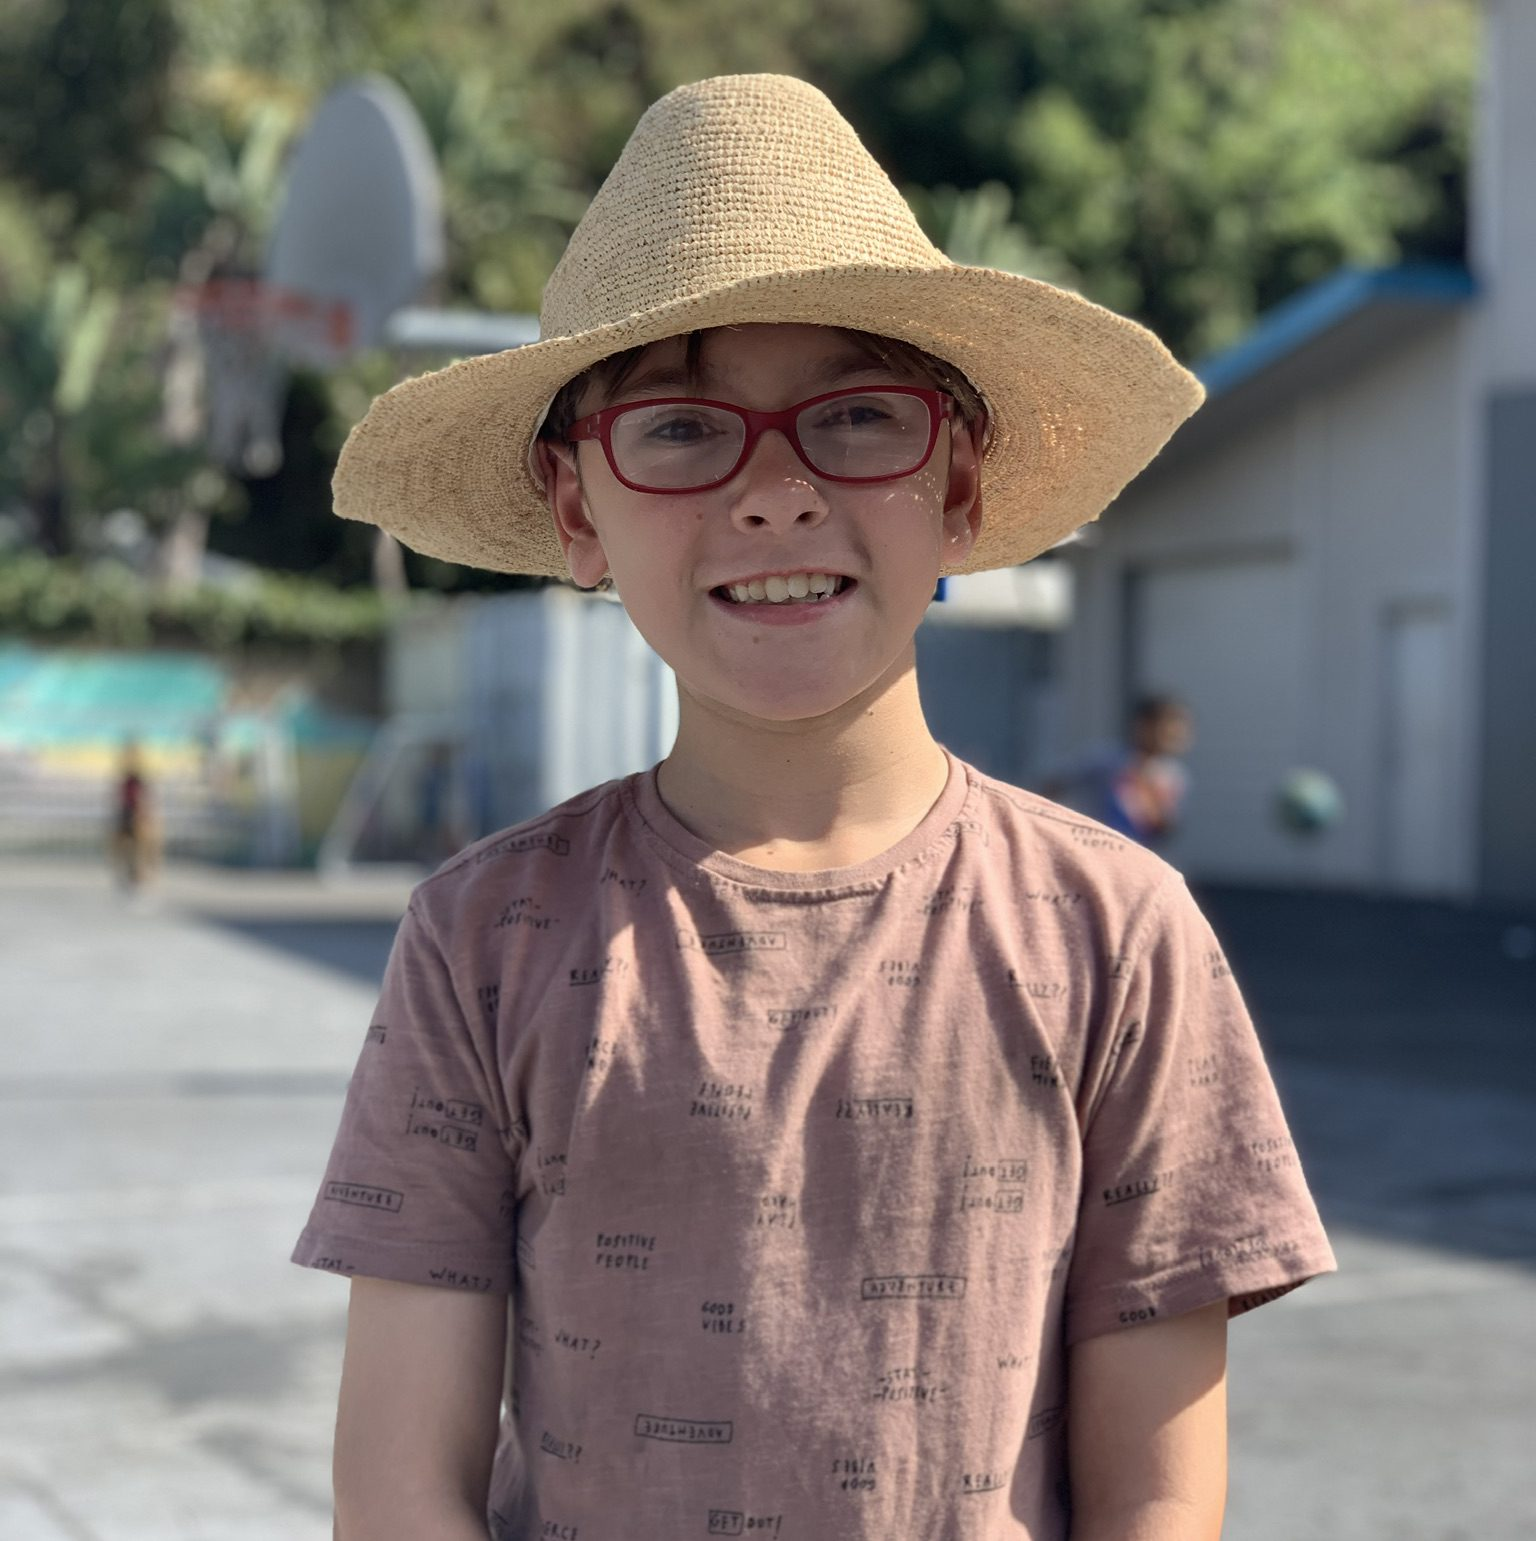 Boy with straw hat on playground at Canyon Enrichment Center